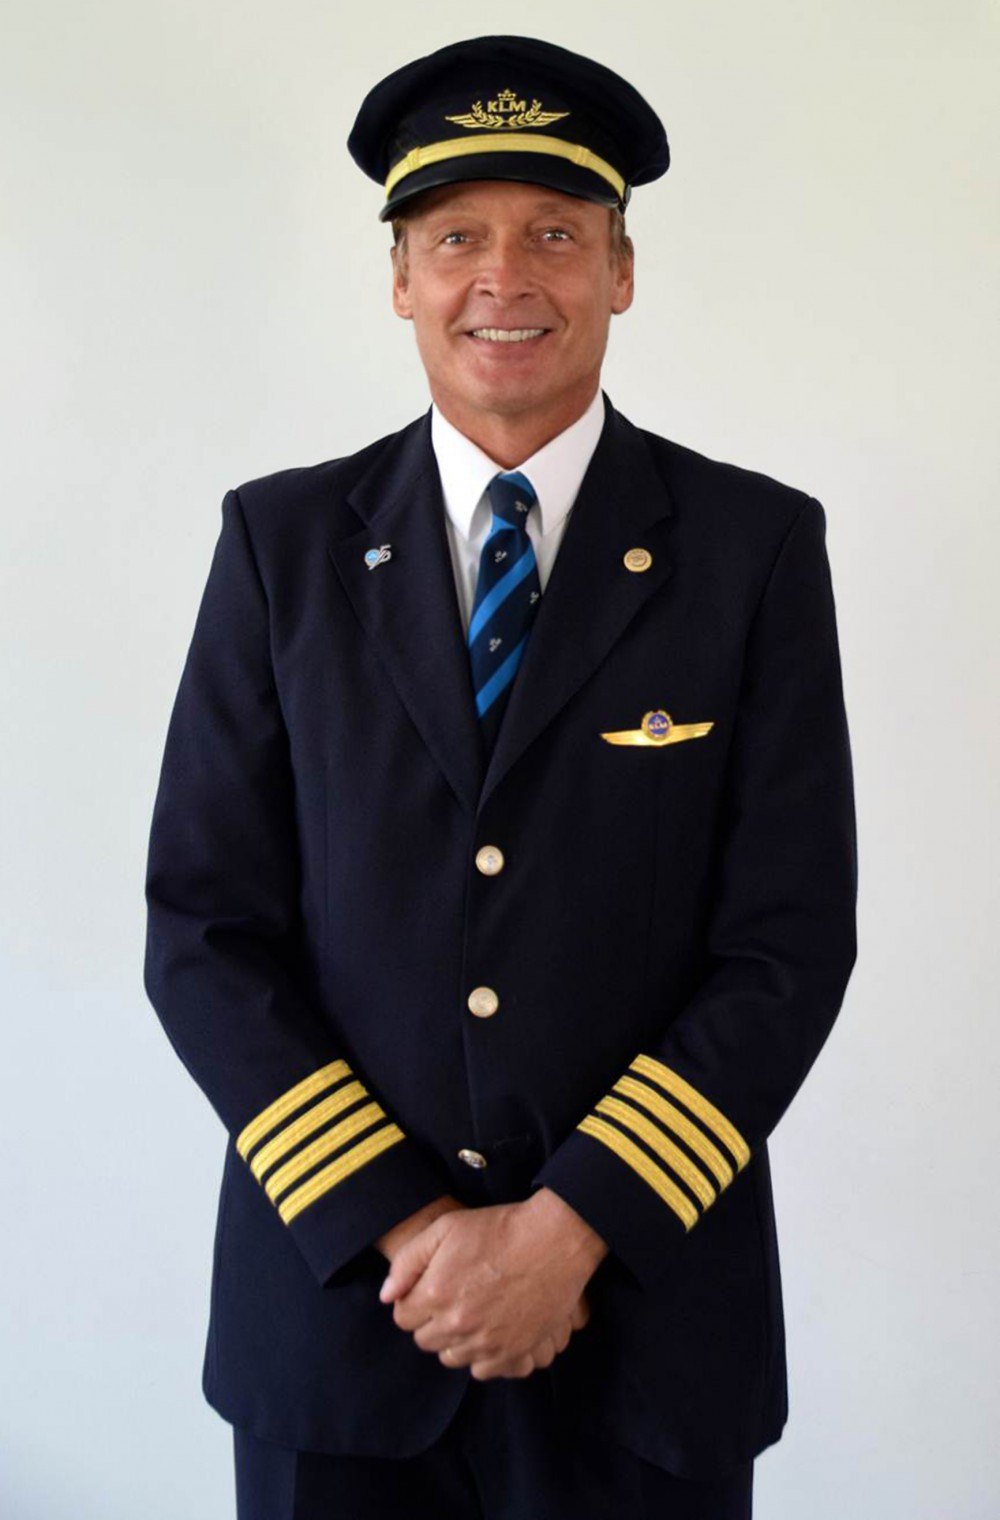 KLM interview with pilot